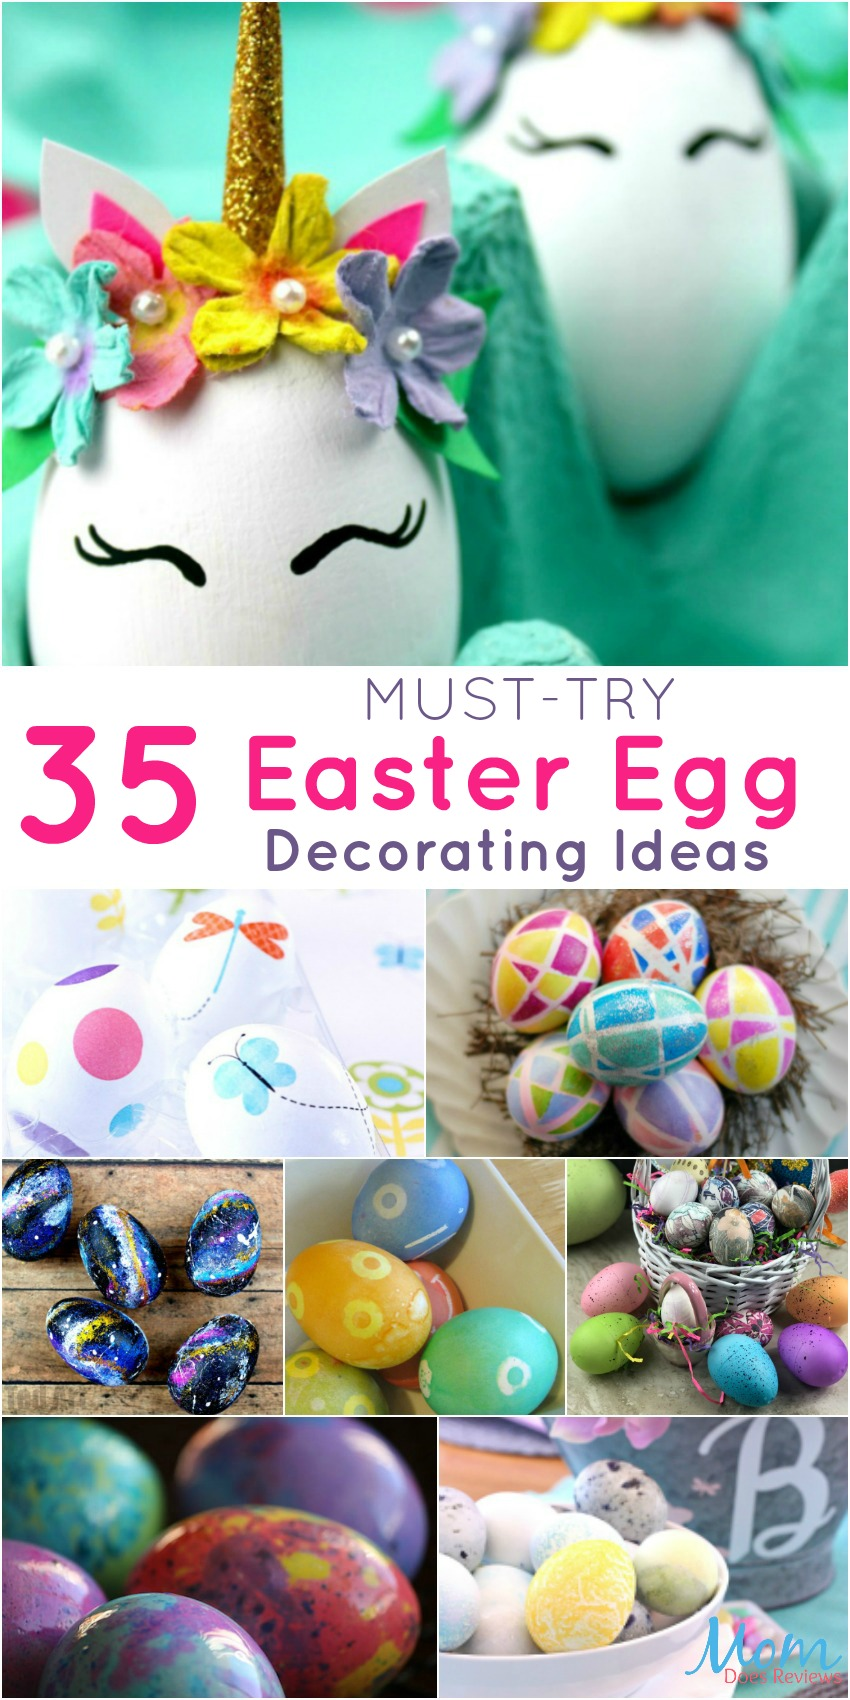 35 Must-Try Easter Egg Decorating Ideas banner